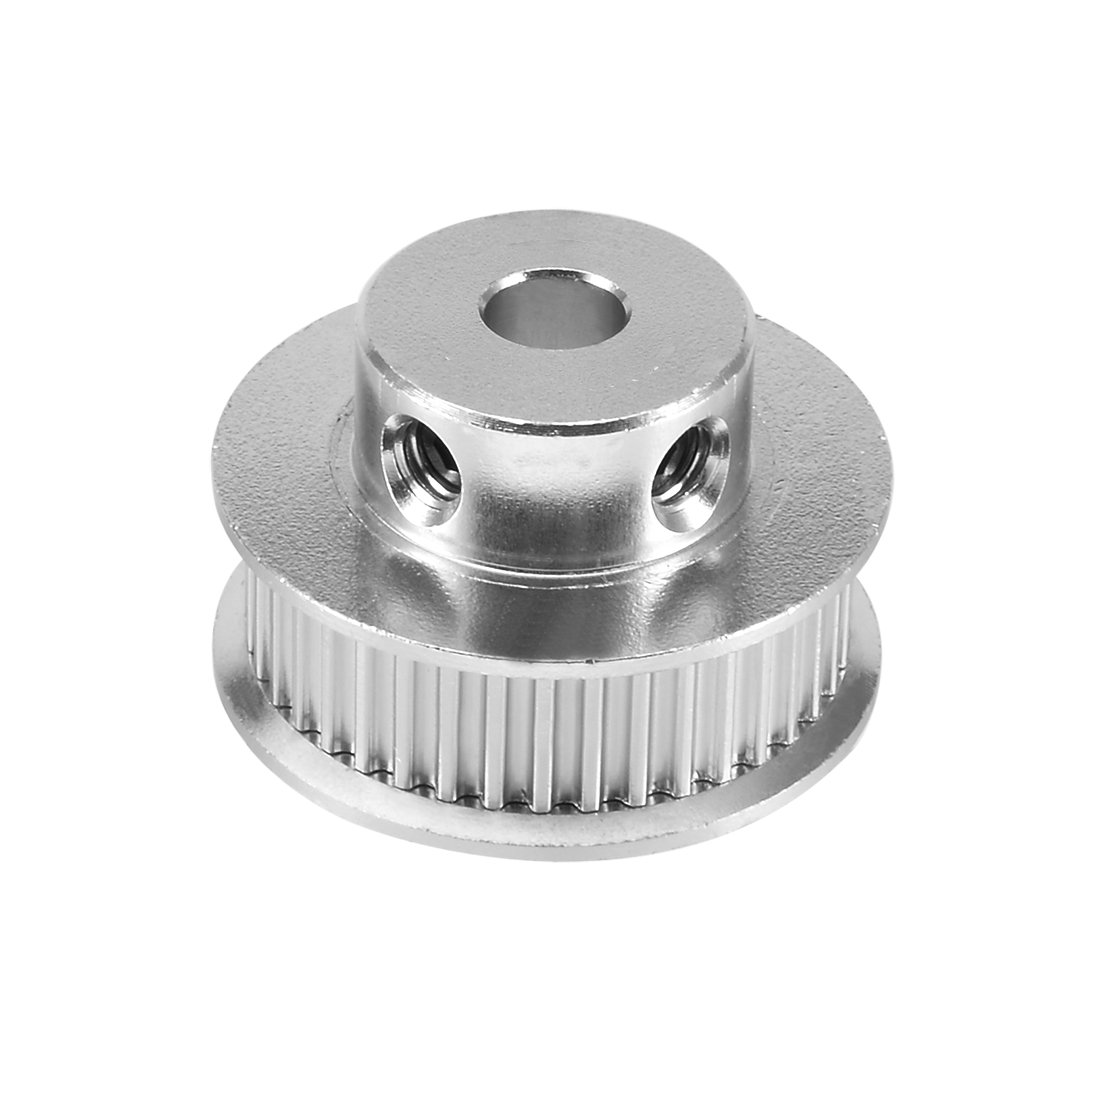 sourcingmap Aluminum GT2 5mm Bore Toothless Timing Belt Idler Pulley Flange w Ball Bearings for 3D Printer a17041300ux0113